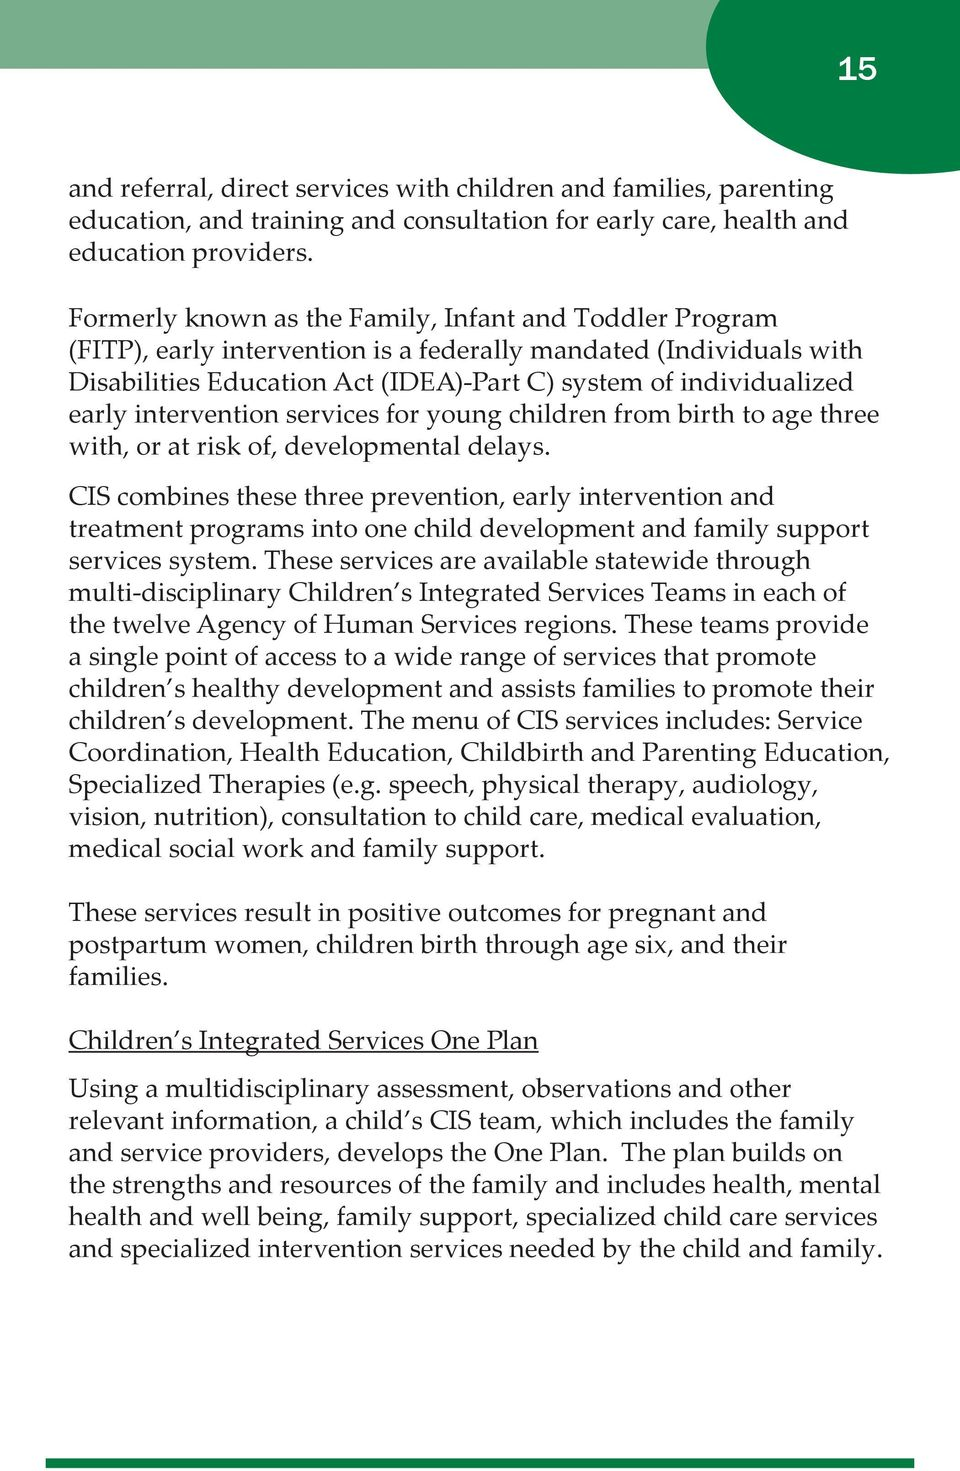 intervention services for young children from birth to age three with, or at risk of, developmental delays.